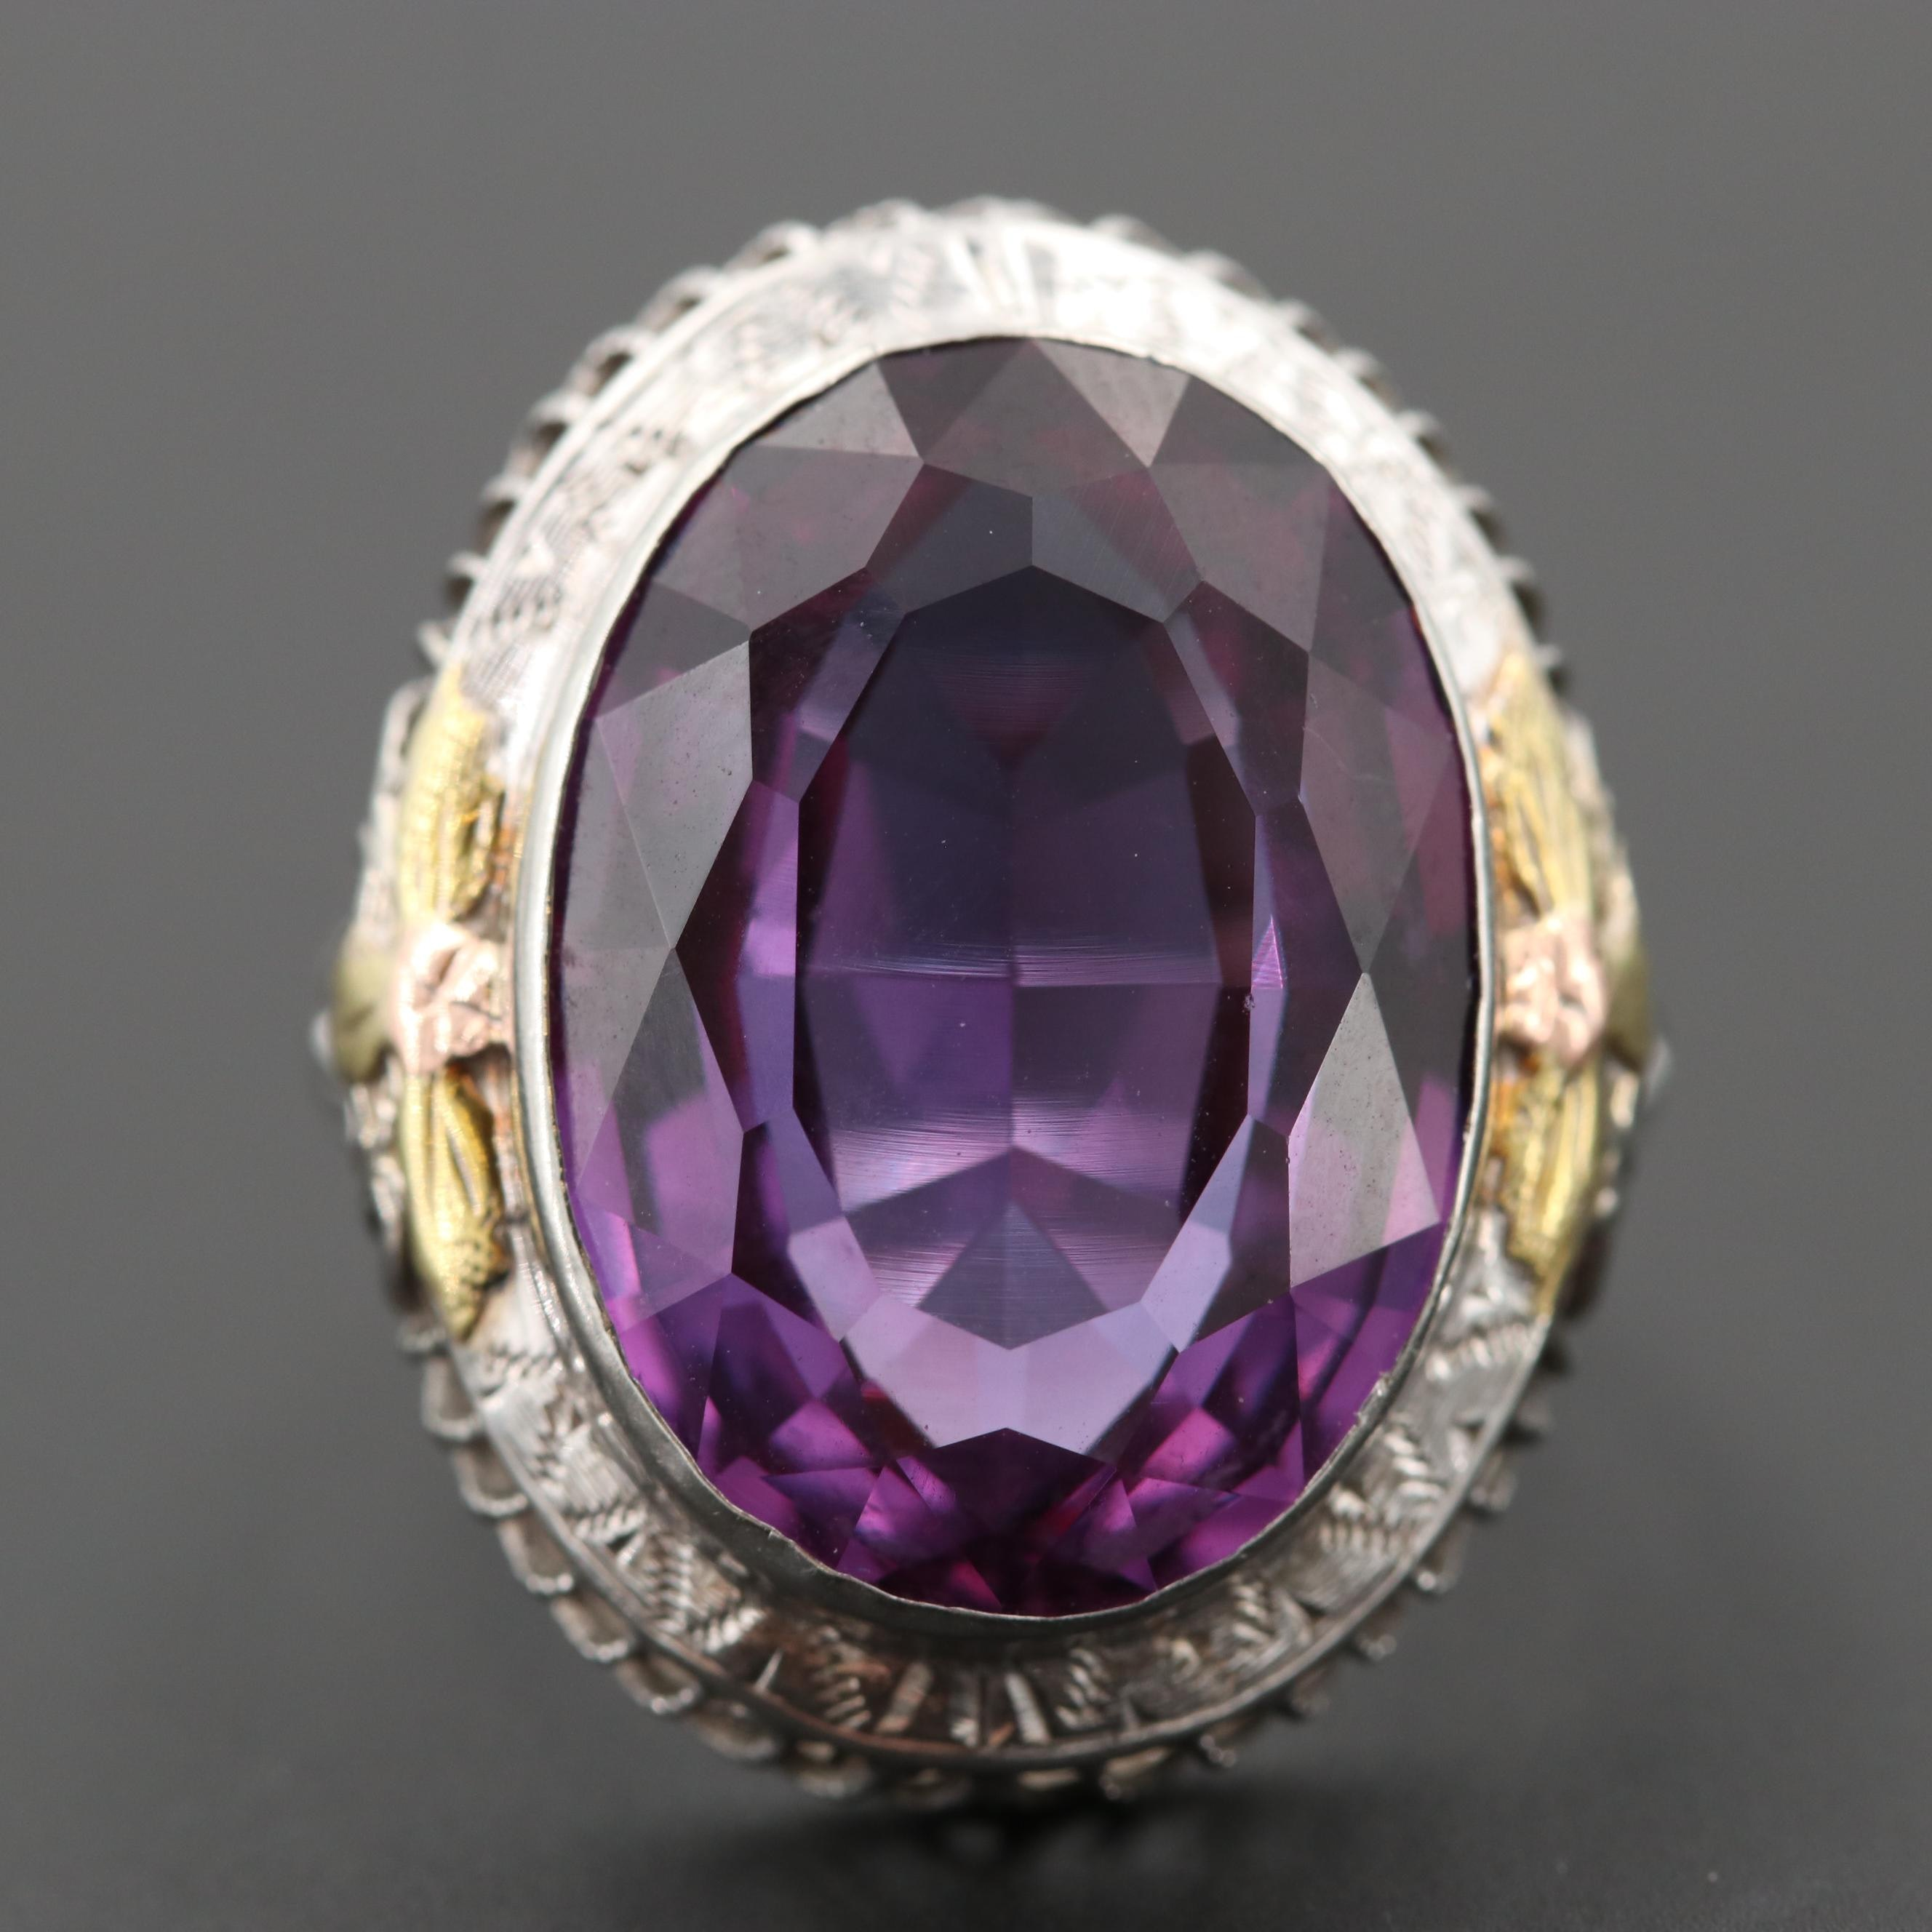 Art Deco 10K White Gold Synthetic Corundum Openwork Ring with 14K Gold Accents